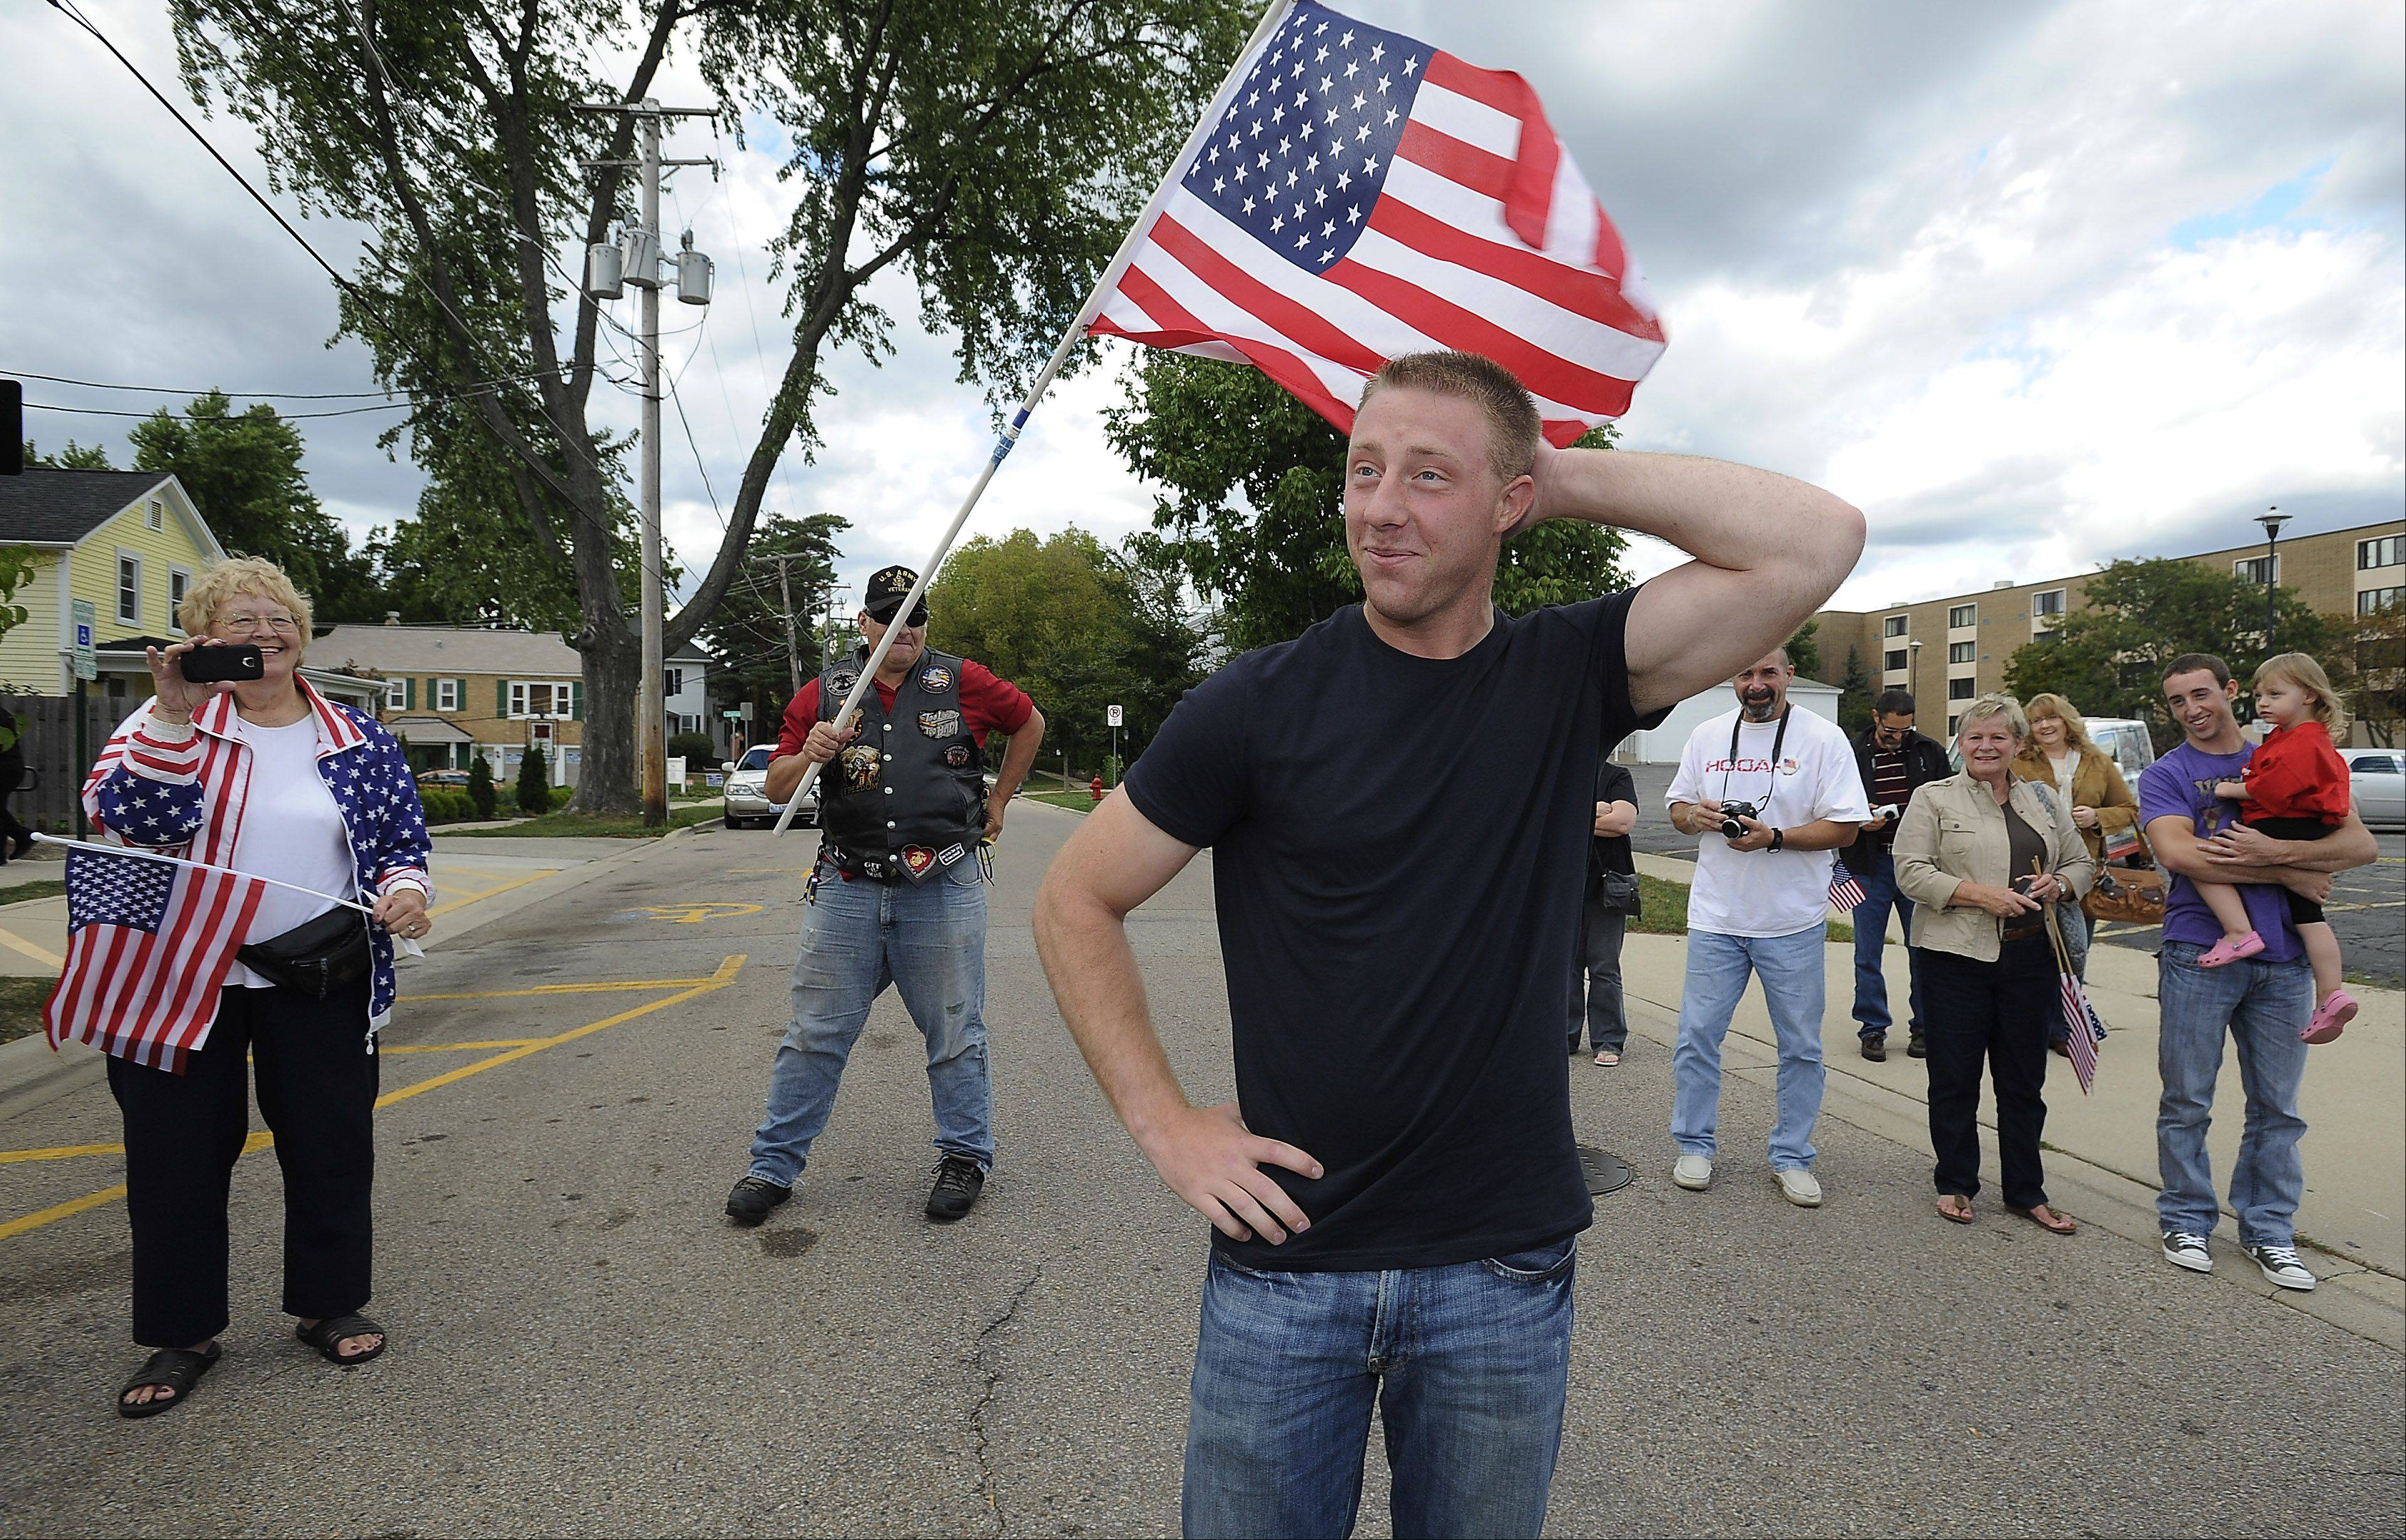 Feeling a bit overwhelmed, Cpl. Marcus Kuiper, 22, of Barrington is welcomed home Saturday after his second tour in Afghanistan by his friends and family members.